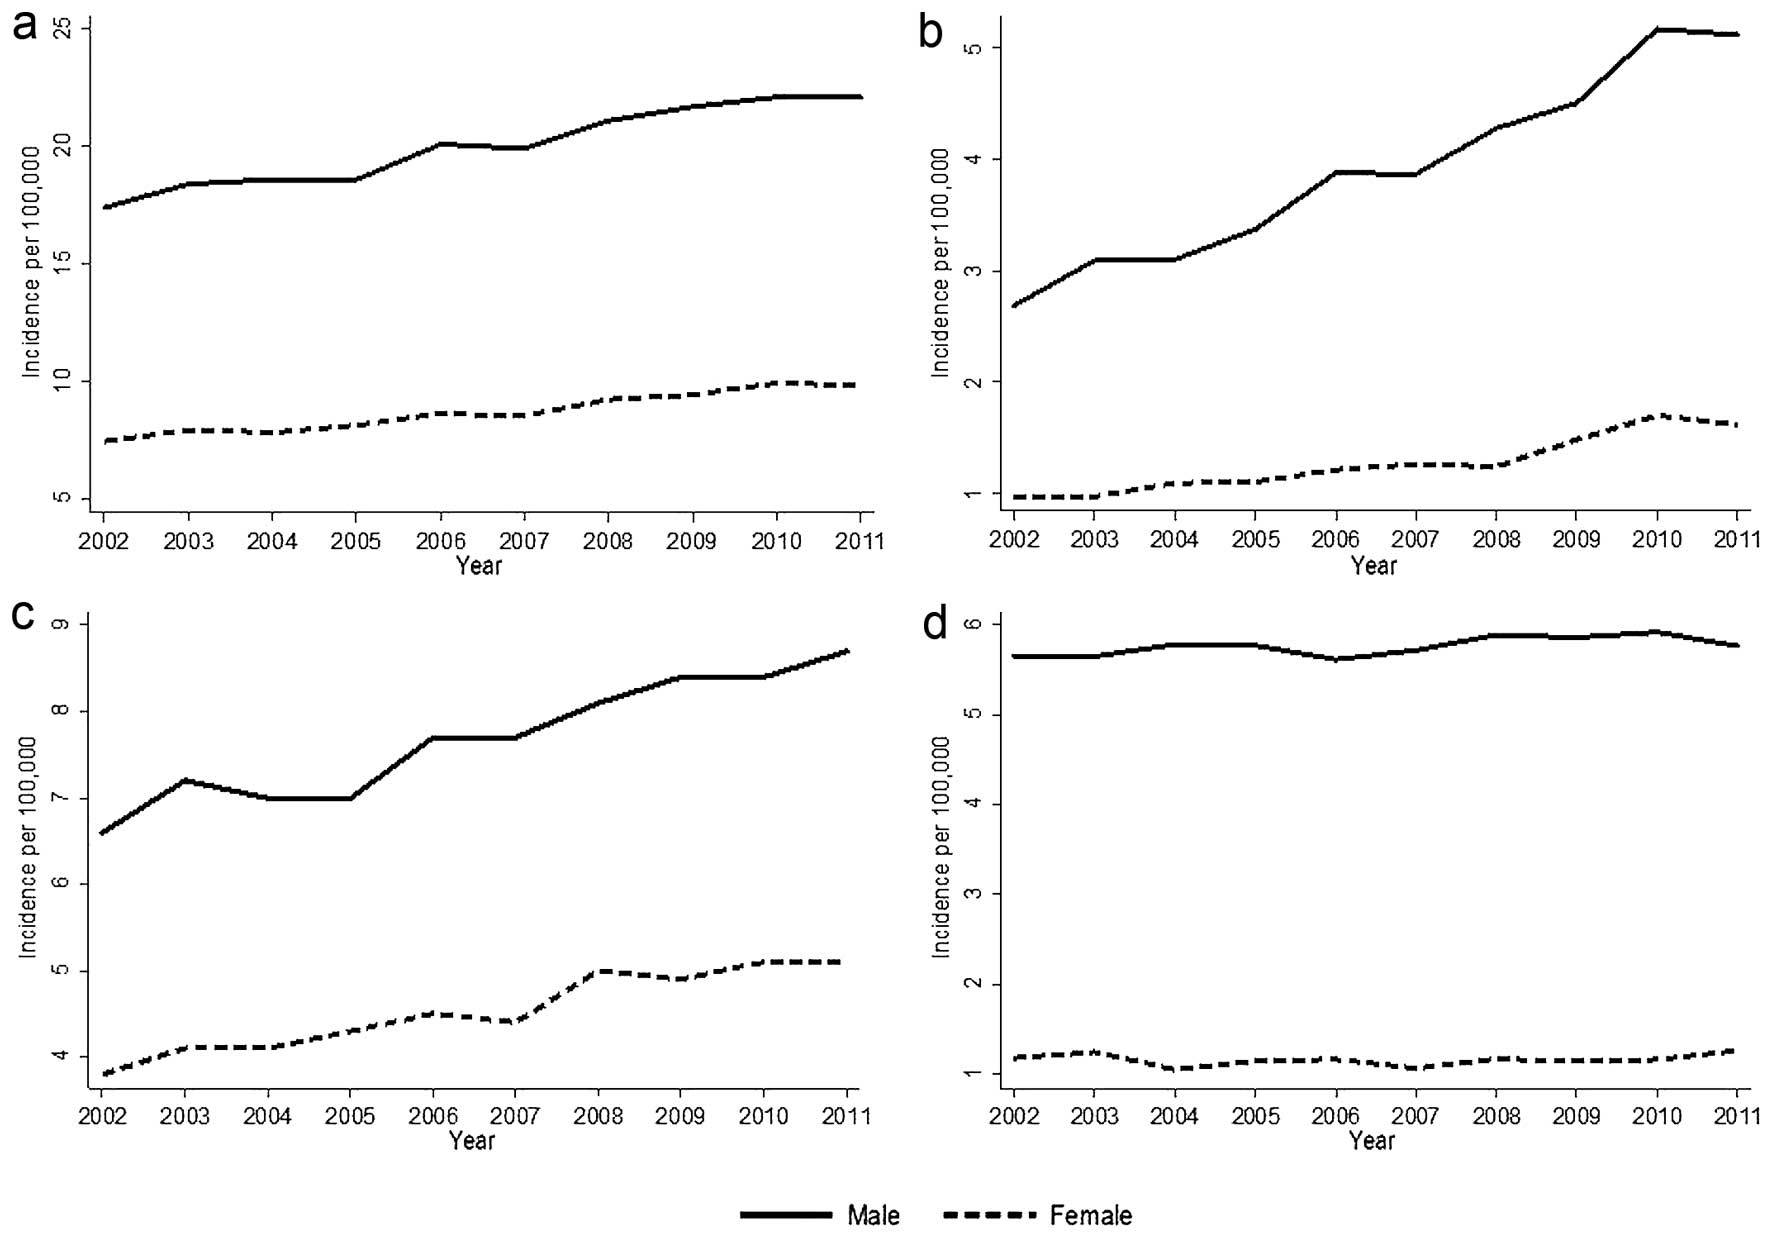 Hpv oropharyngeal cancer incidence - eng2ro.ro